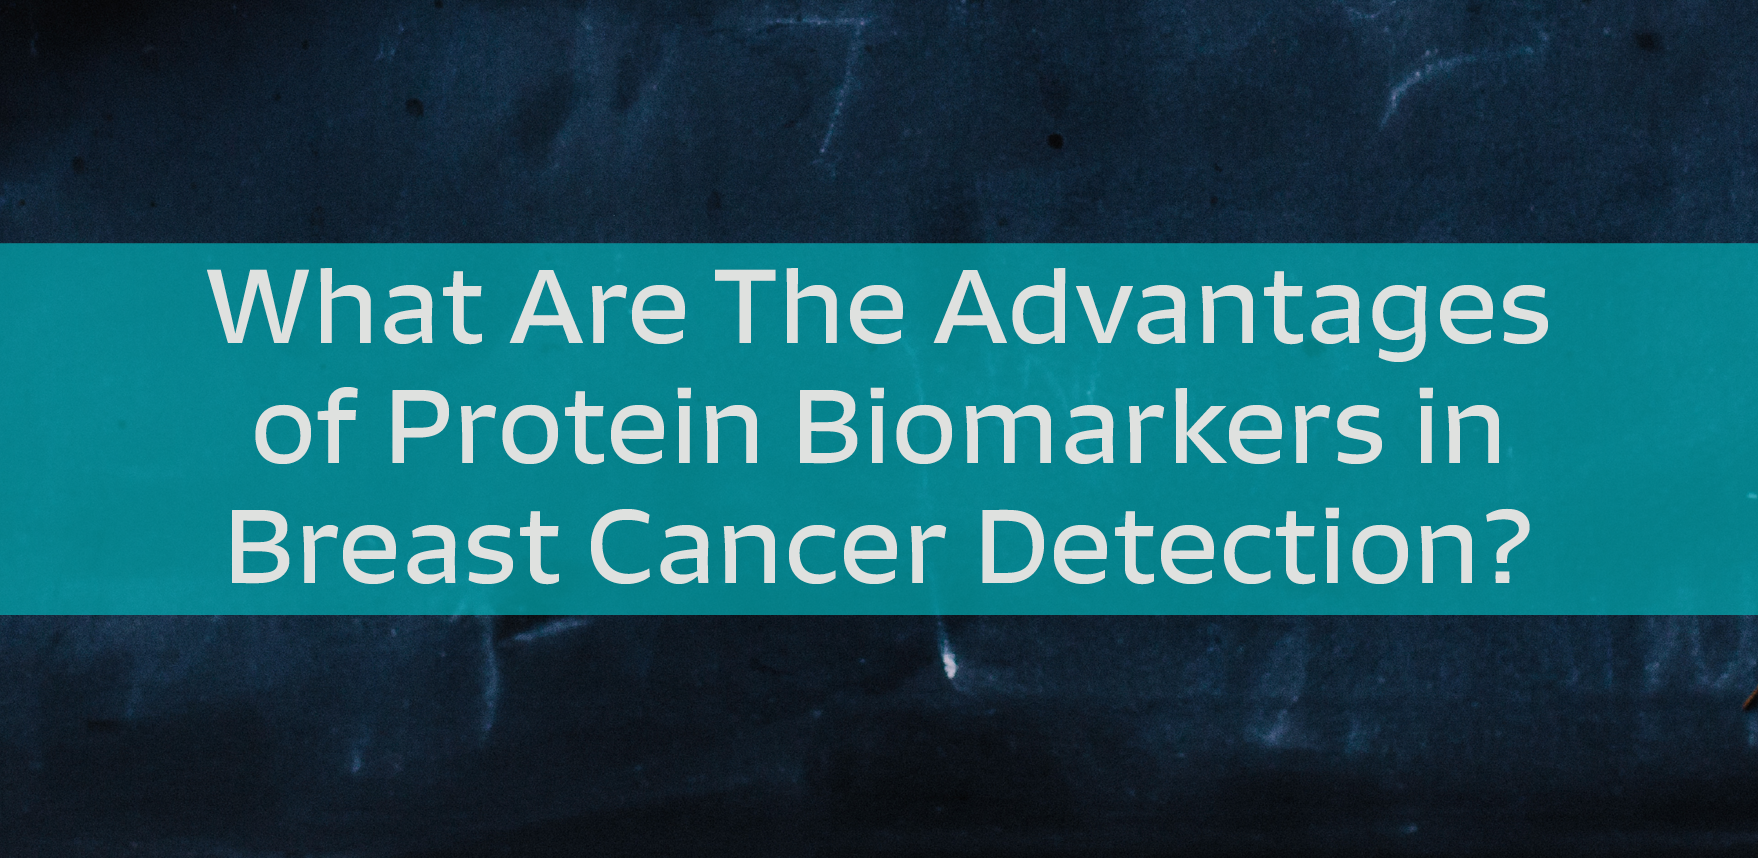 Protein Biomarkers in Breast Cancer.png